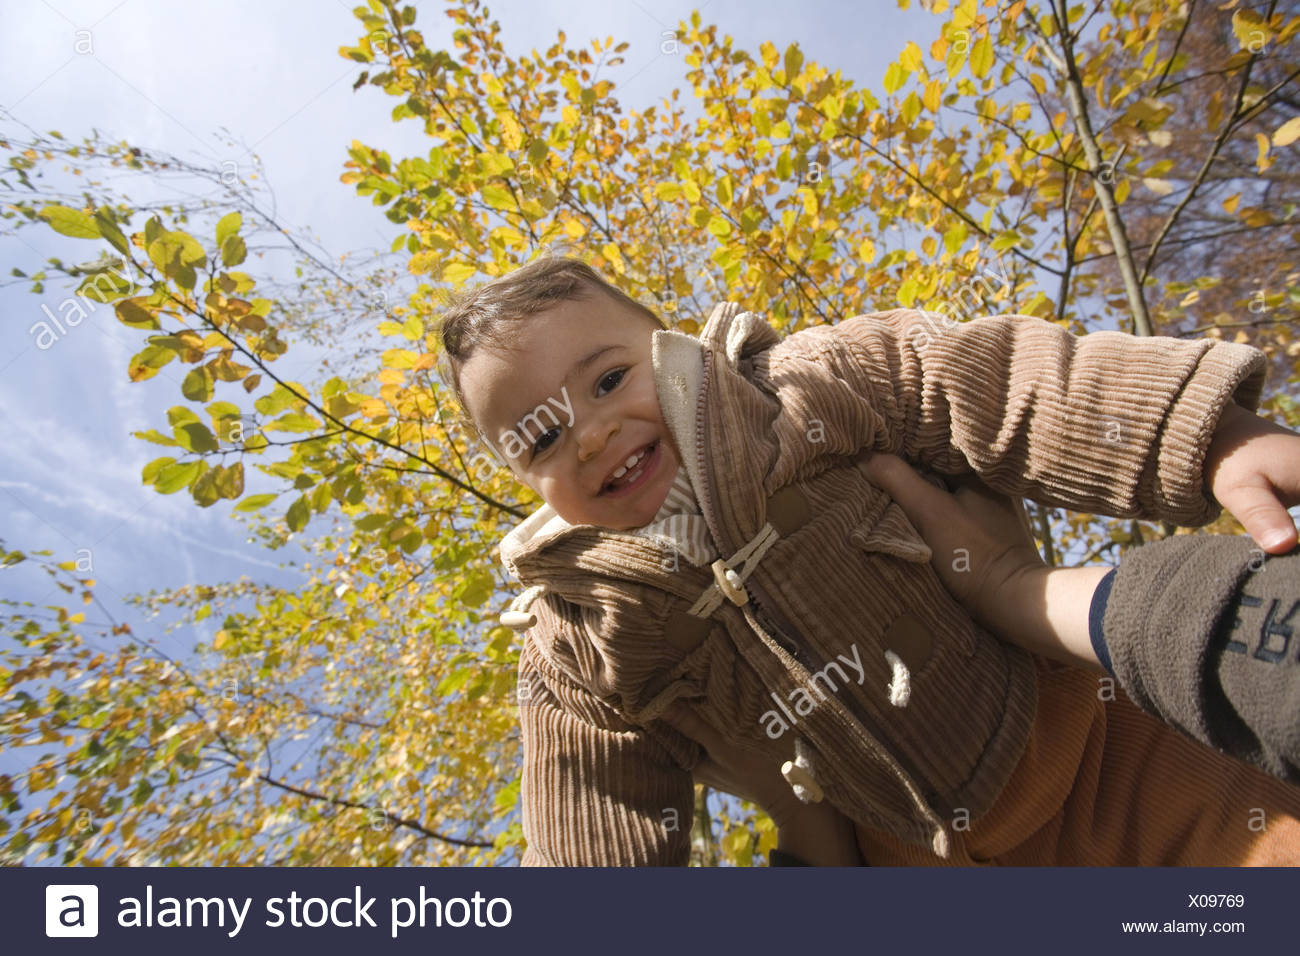 Child lifted up, Muenchen, Bavaria, Germany - Stock Image